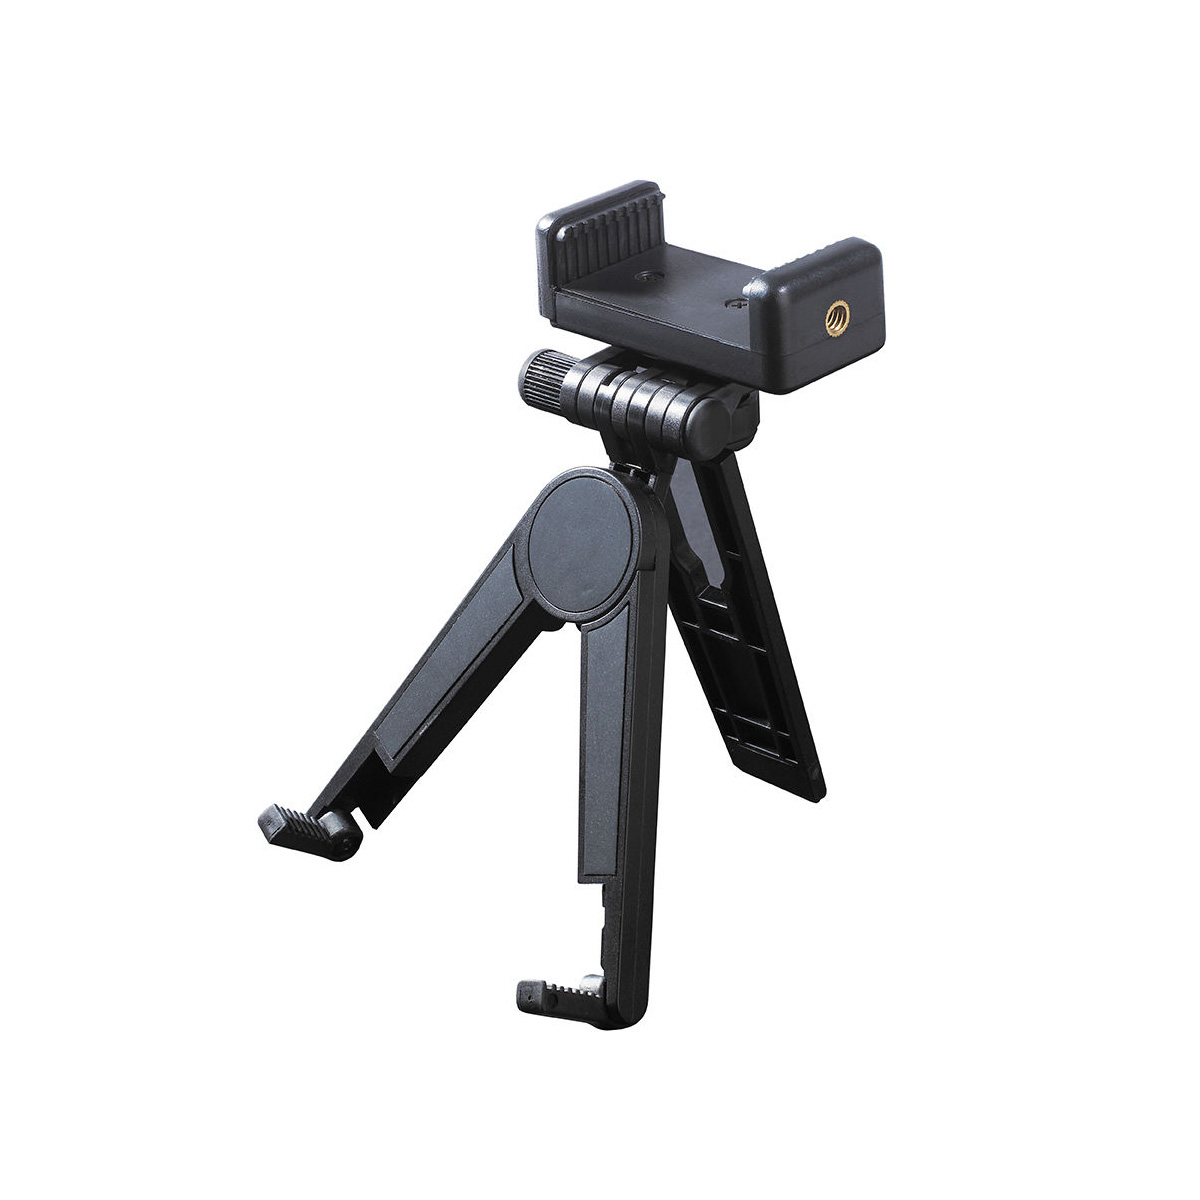 Mini Tripod + Holder For UO Smart Beam Laser Projector